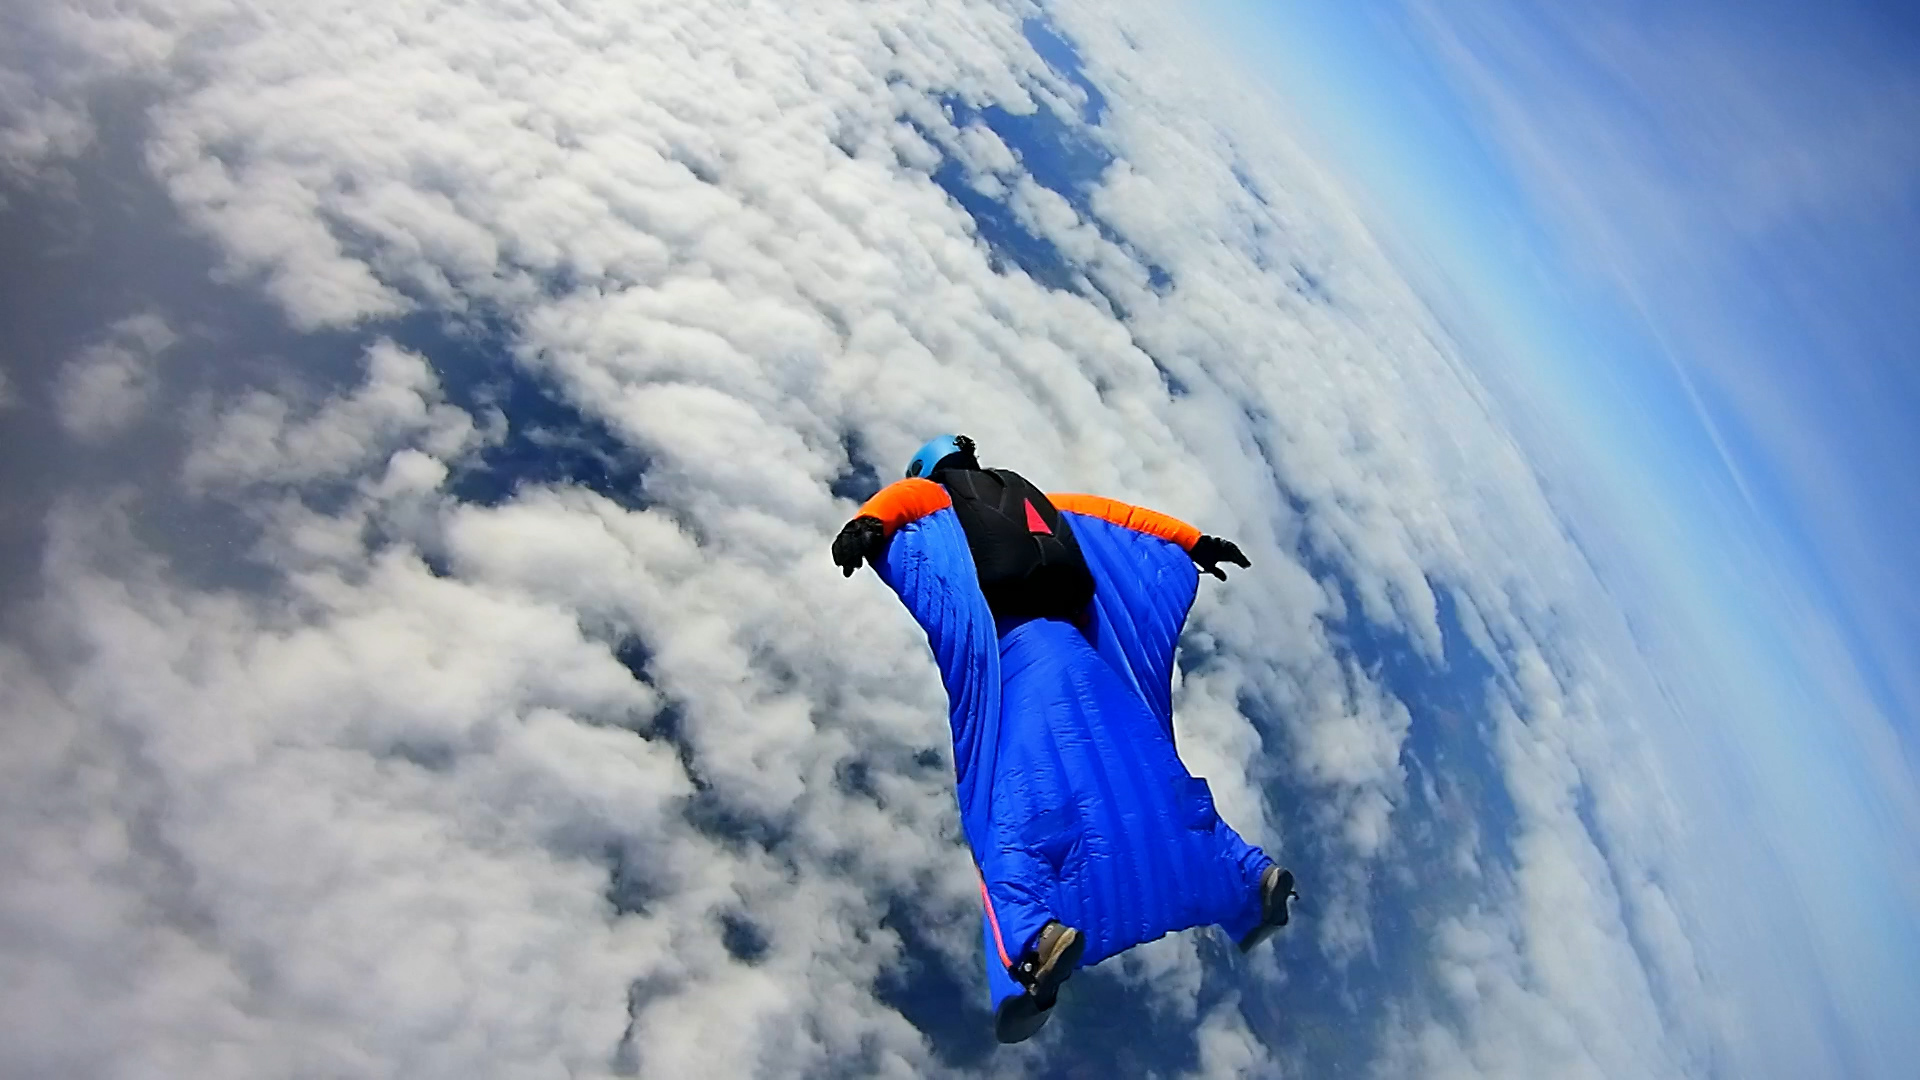 CBBC Beyond Bionic - Andy Torbet flying in the sky